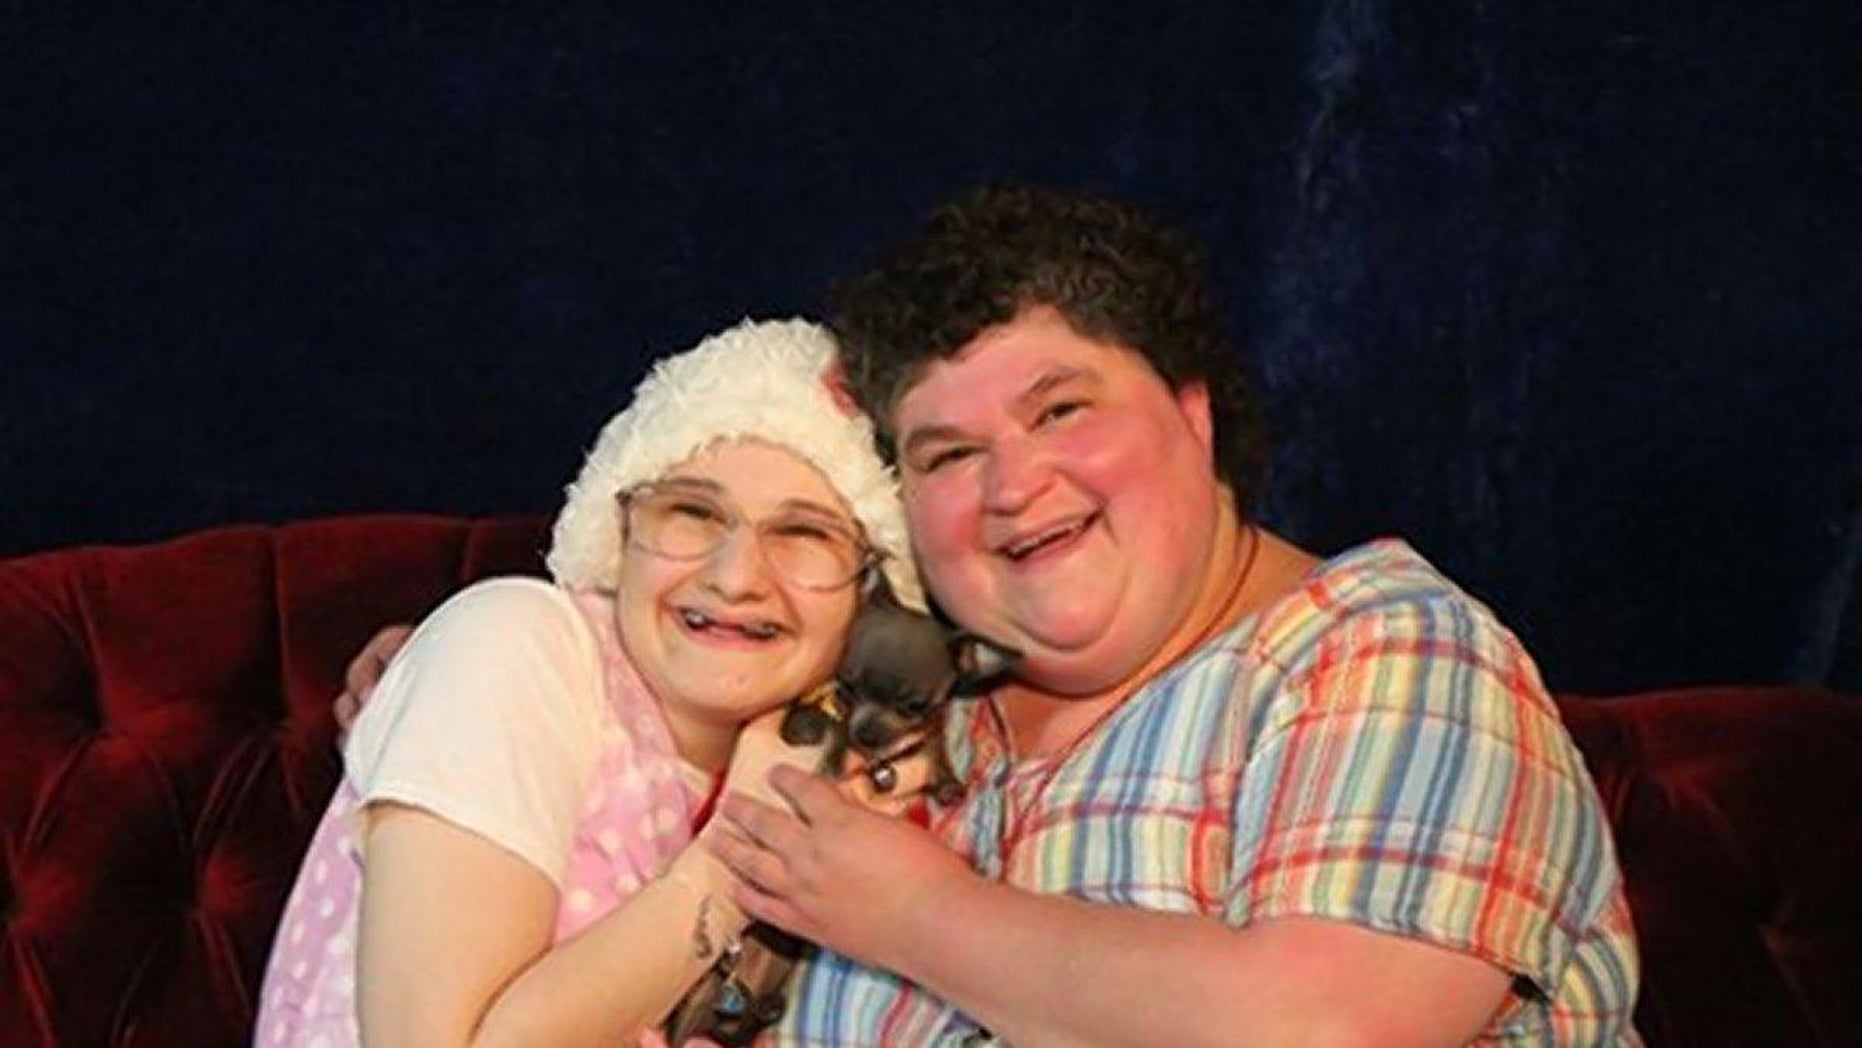 Gypsy Rose Blanchard (left) opened up about the abuse she endured from her mother, Dee Dee (right), before her murder.